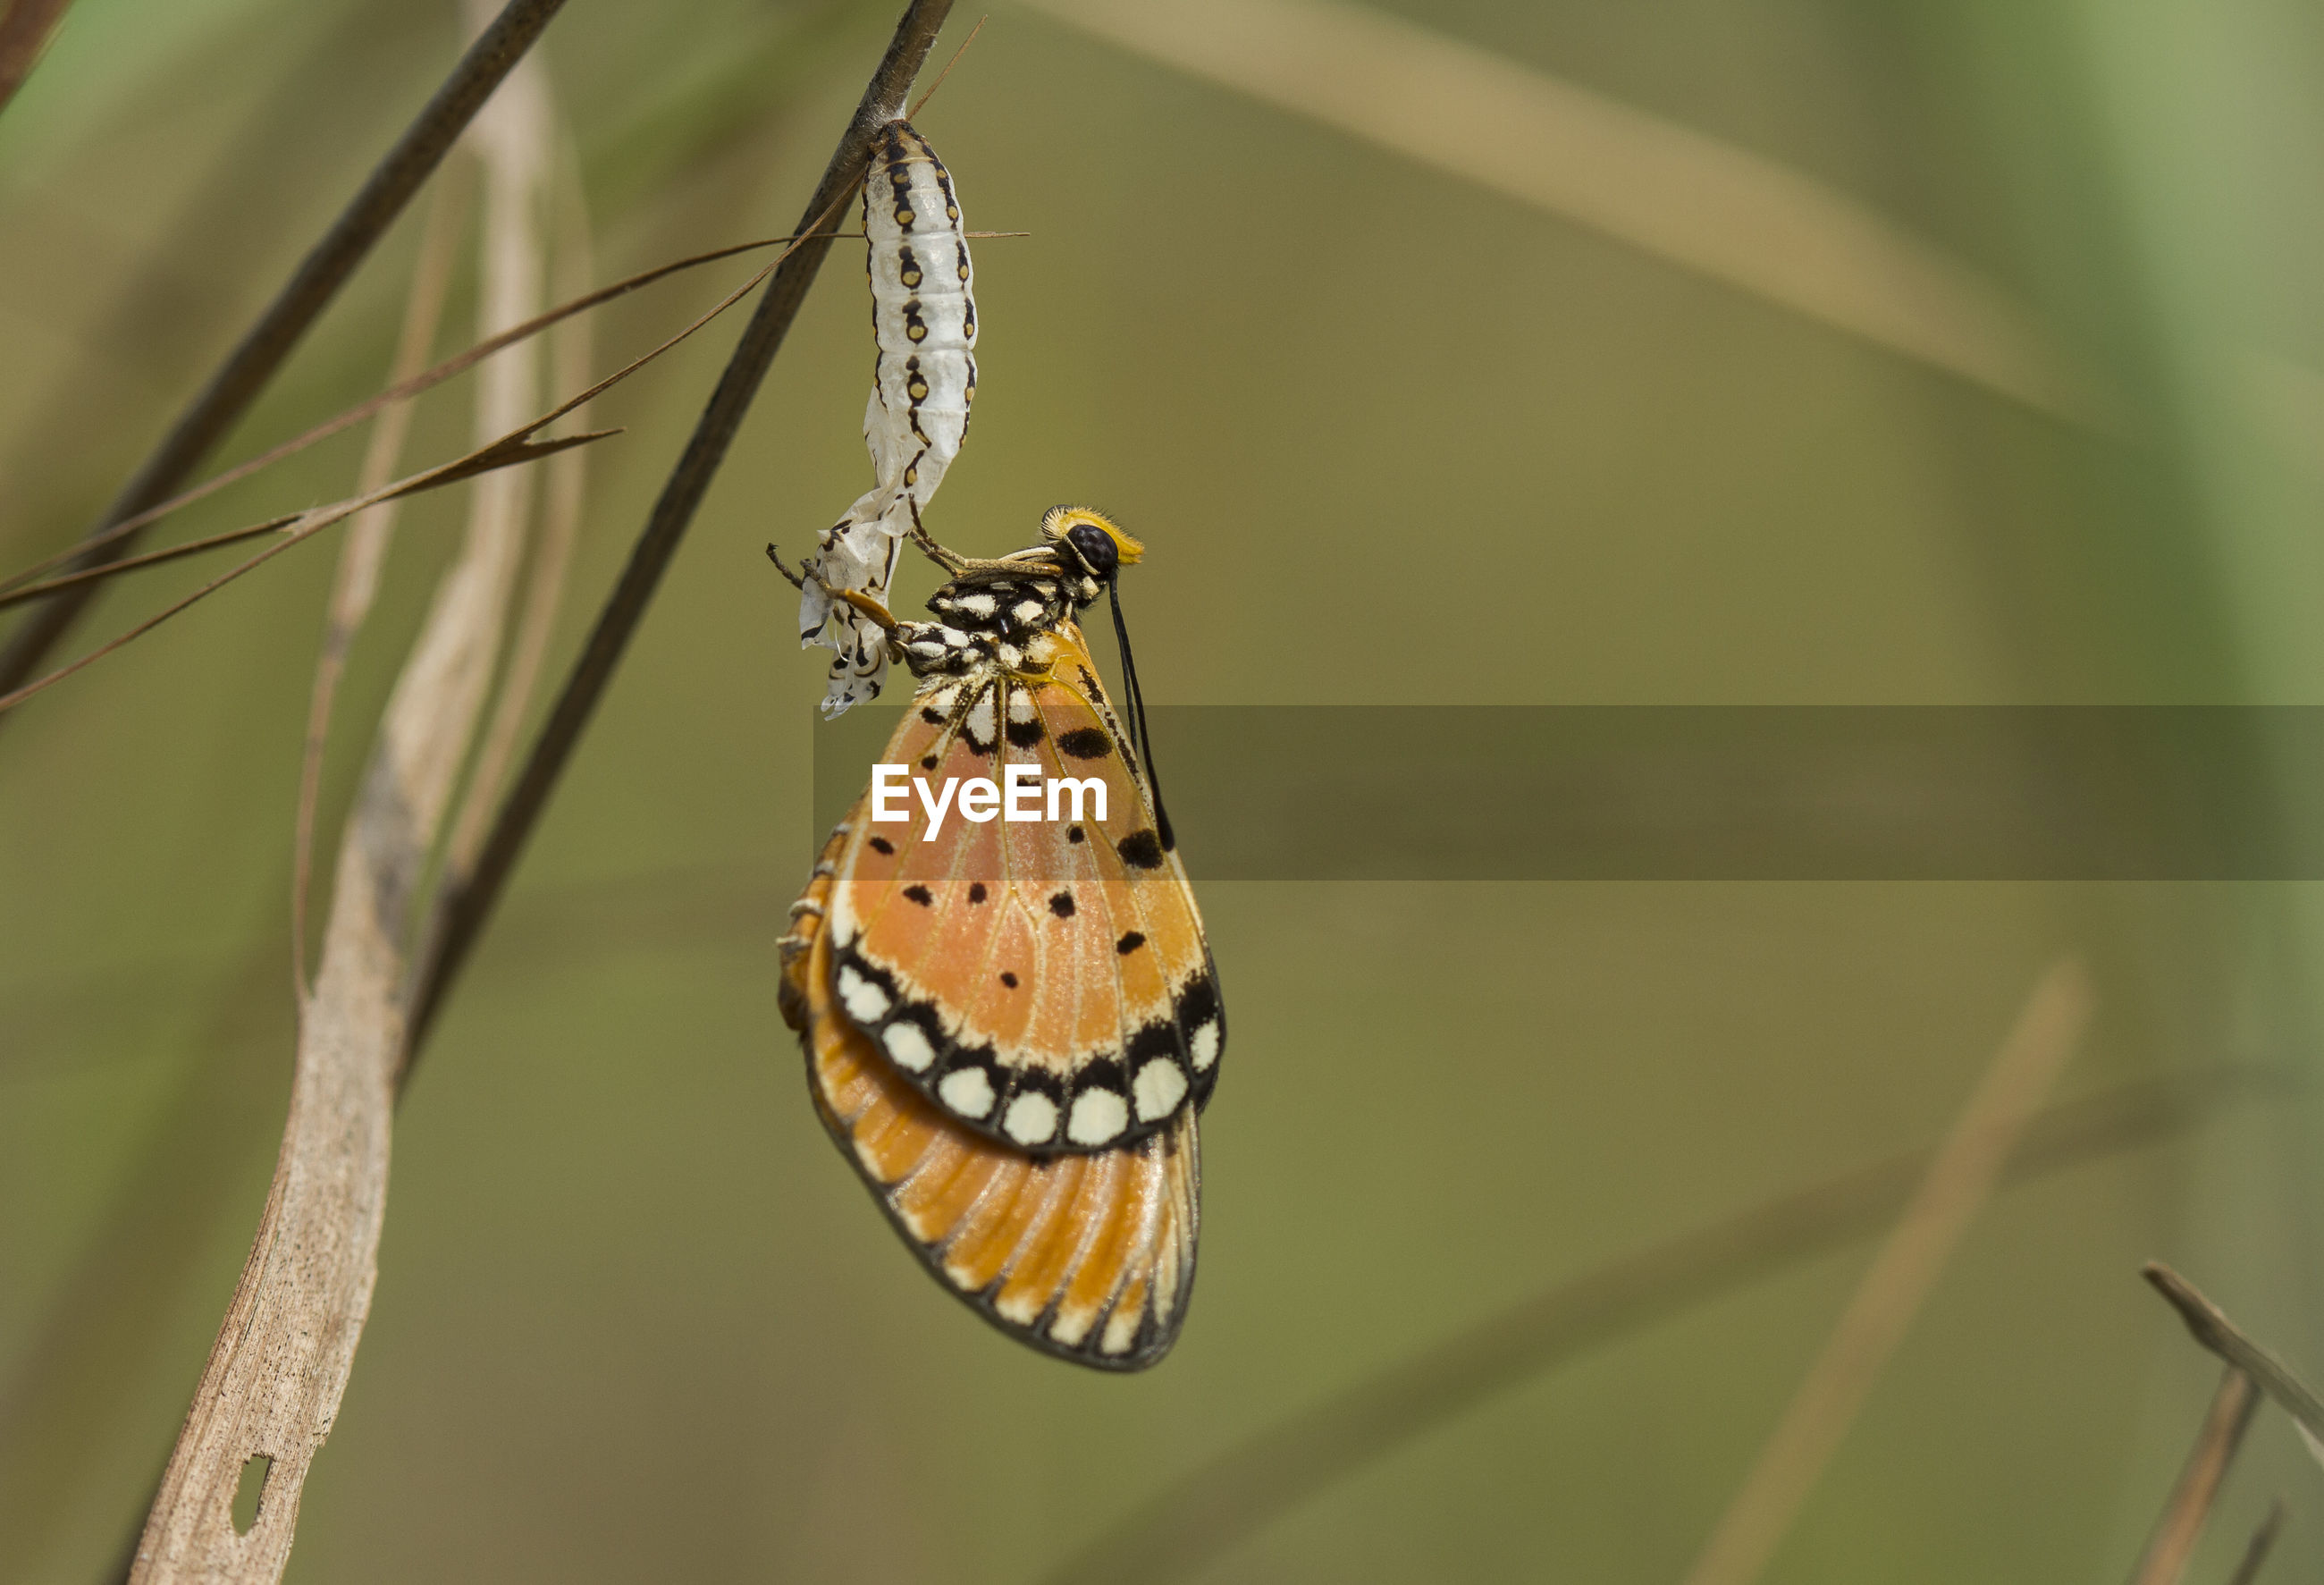 Close-up of butterfly on plant stem